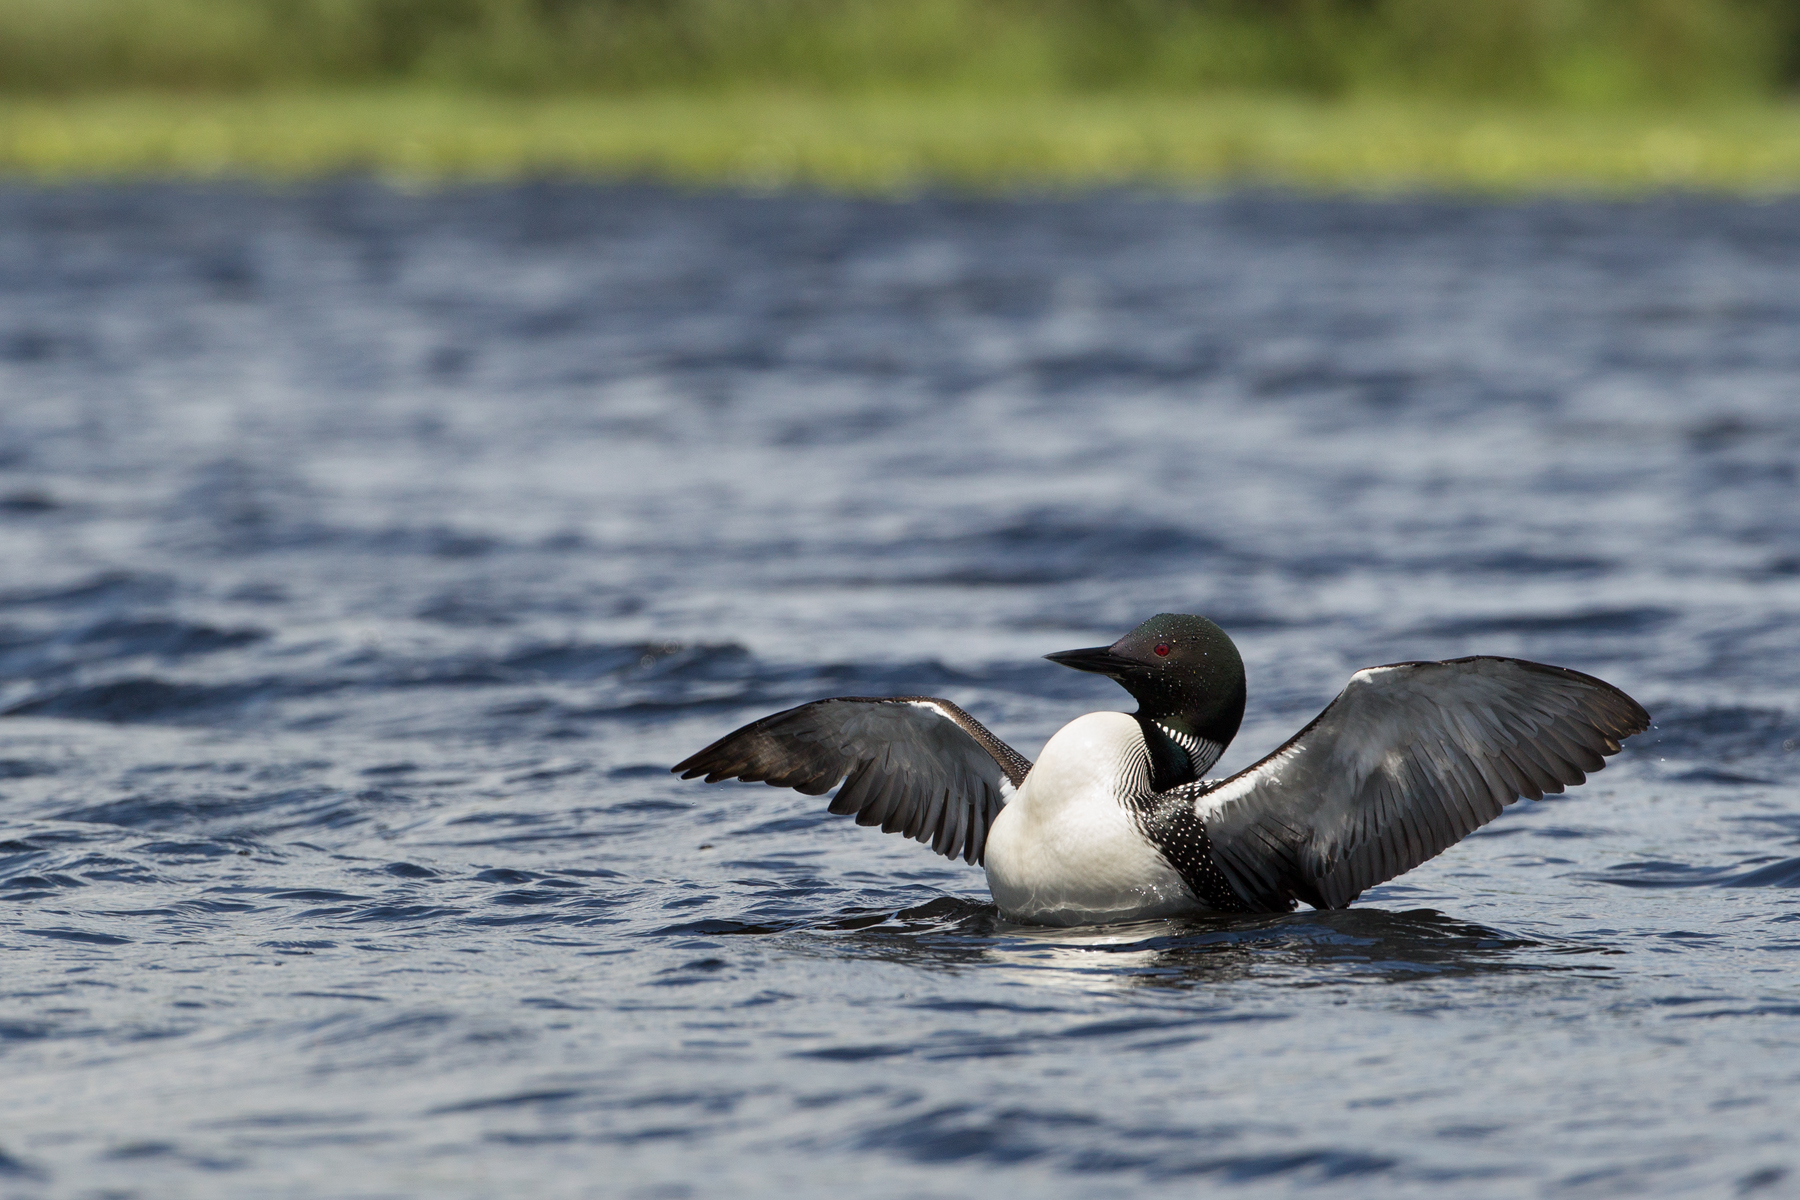 After a second attempt at a different lake, a new loon approaches the decoy. With only a dozen or so pairs of Common Loons in the Greater Yellowstone Ecosystem, every capture attempt is crucial in learning about this small population.  Image ©Connor Stefanison